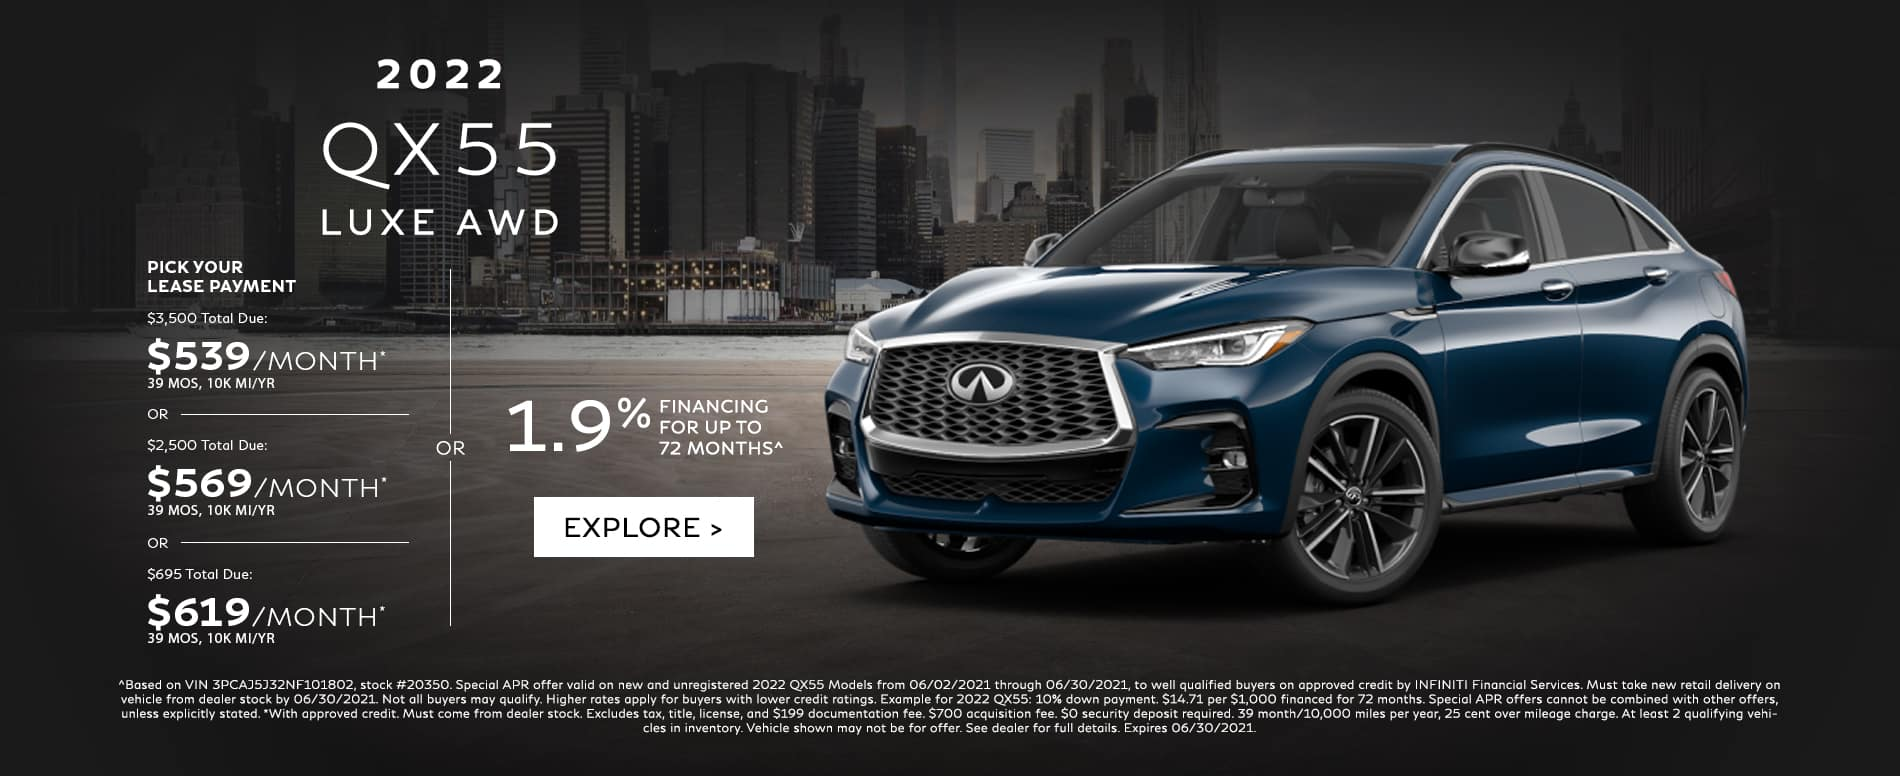 Lease from $539 per month. See dealer for details.